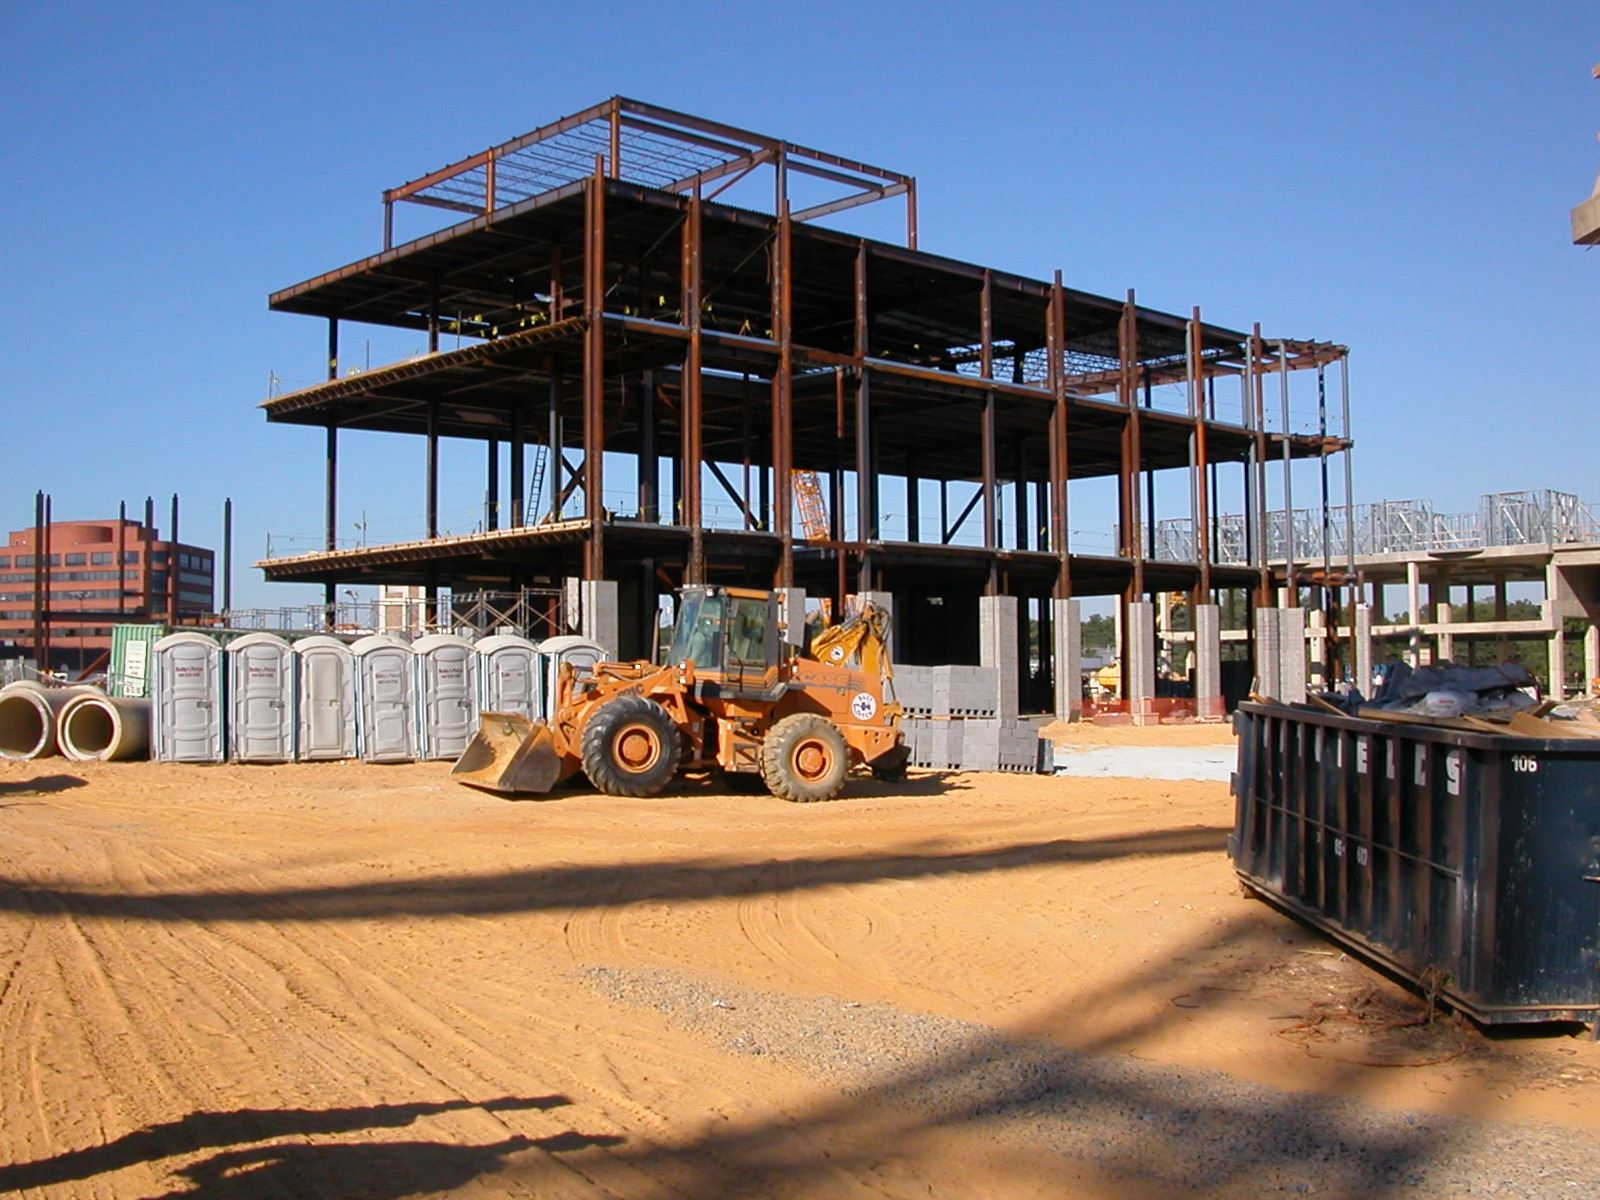 Photo of a building being constructed